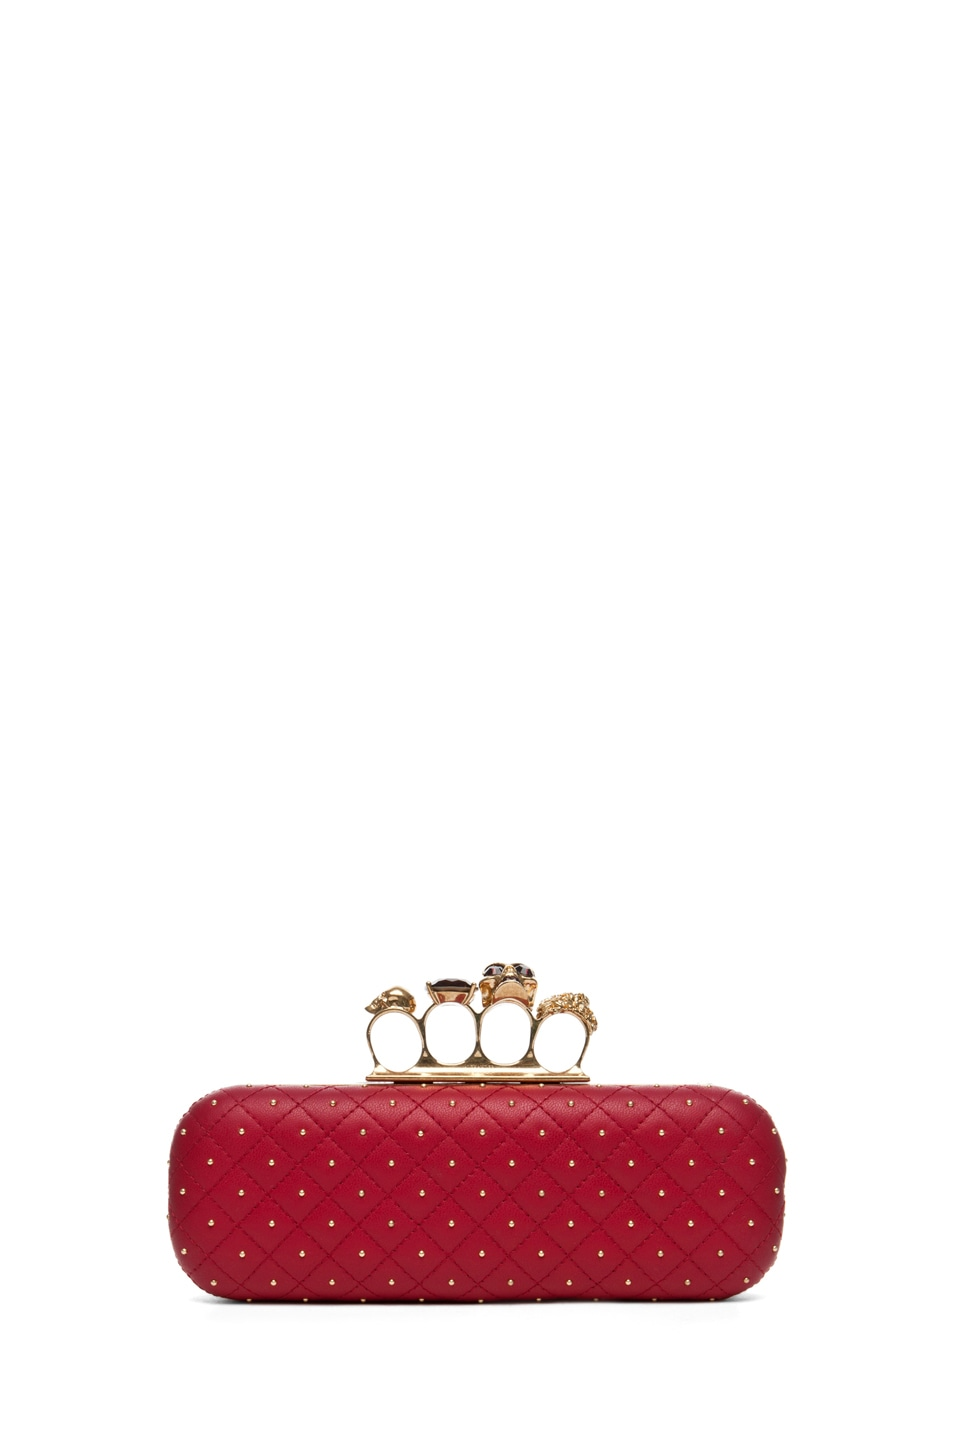 Image 1 of Alexander McQueen Knuckle Box Long Clutch in Cherry